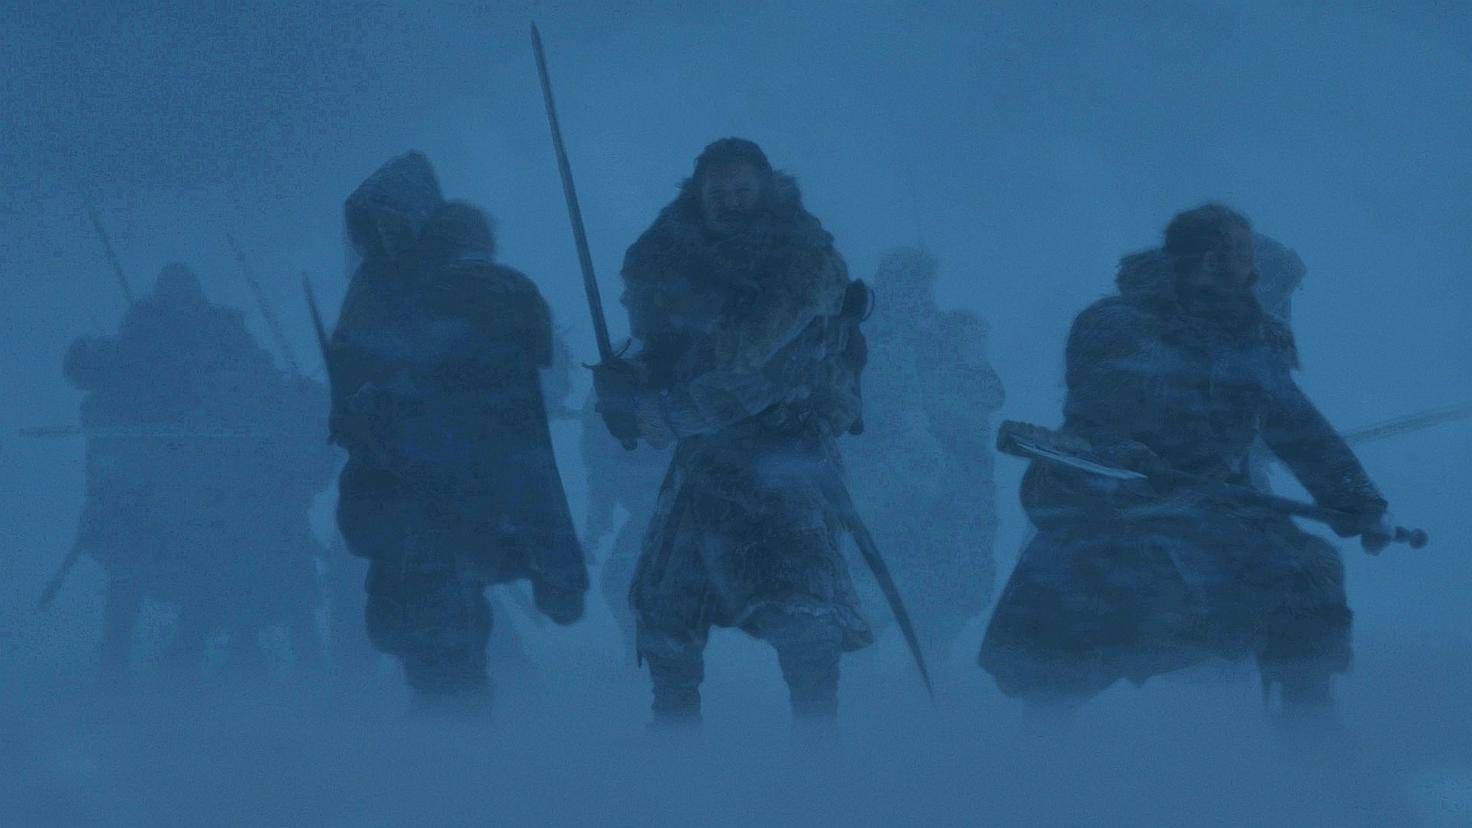 game-of-thrones-staffel-7-episode-6-jon-snow-im-schnee